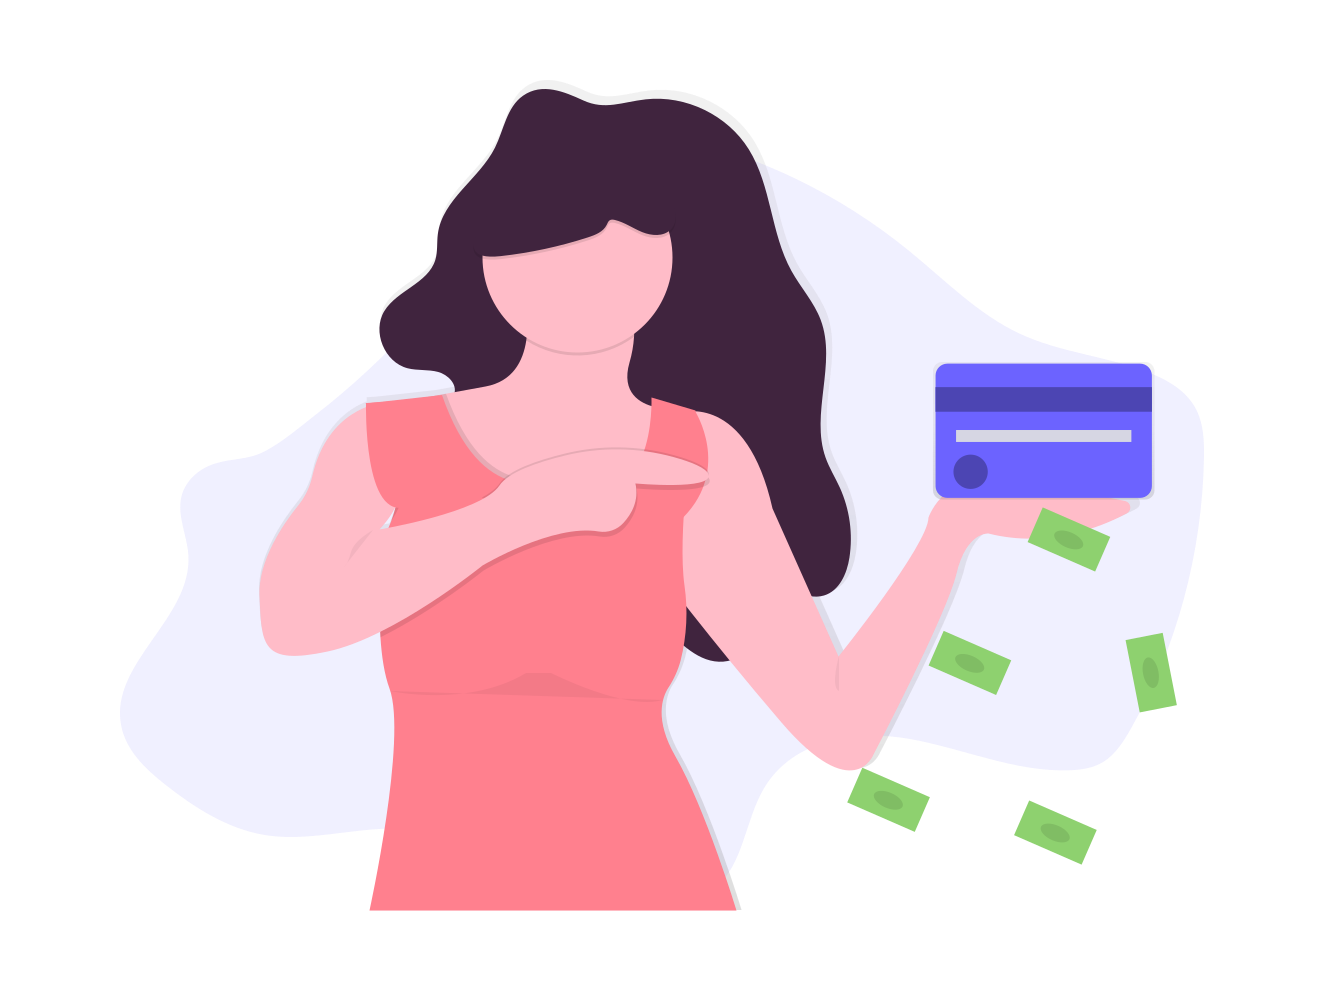 Making Payments Through Chatbots